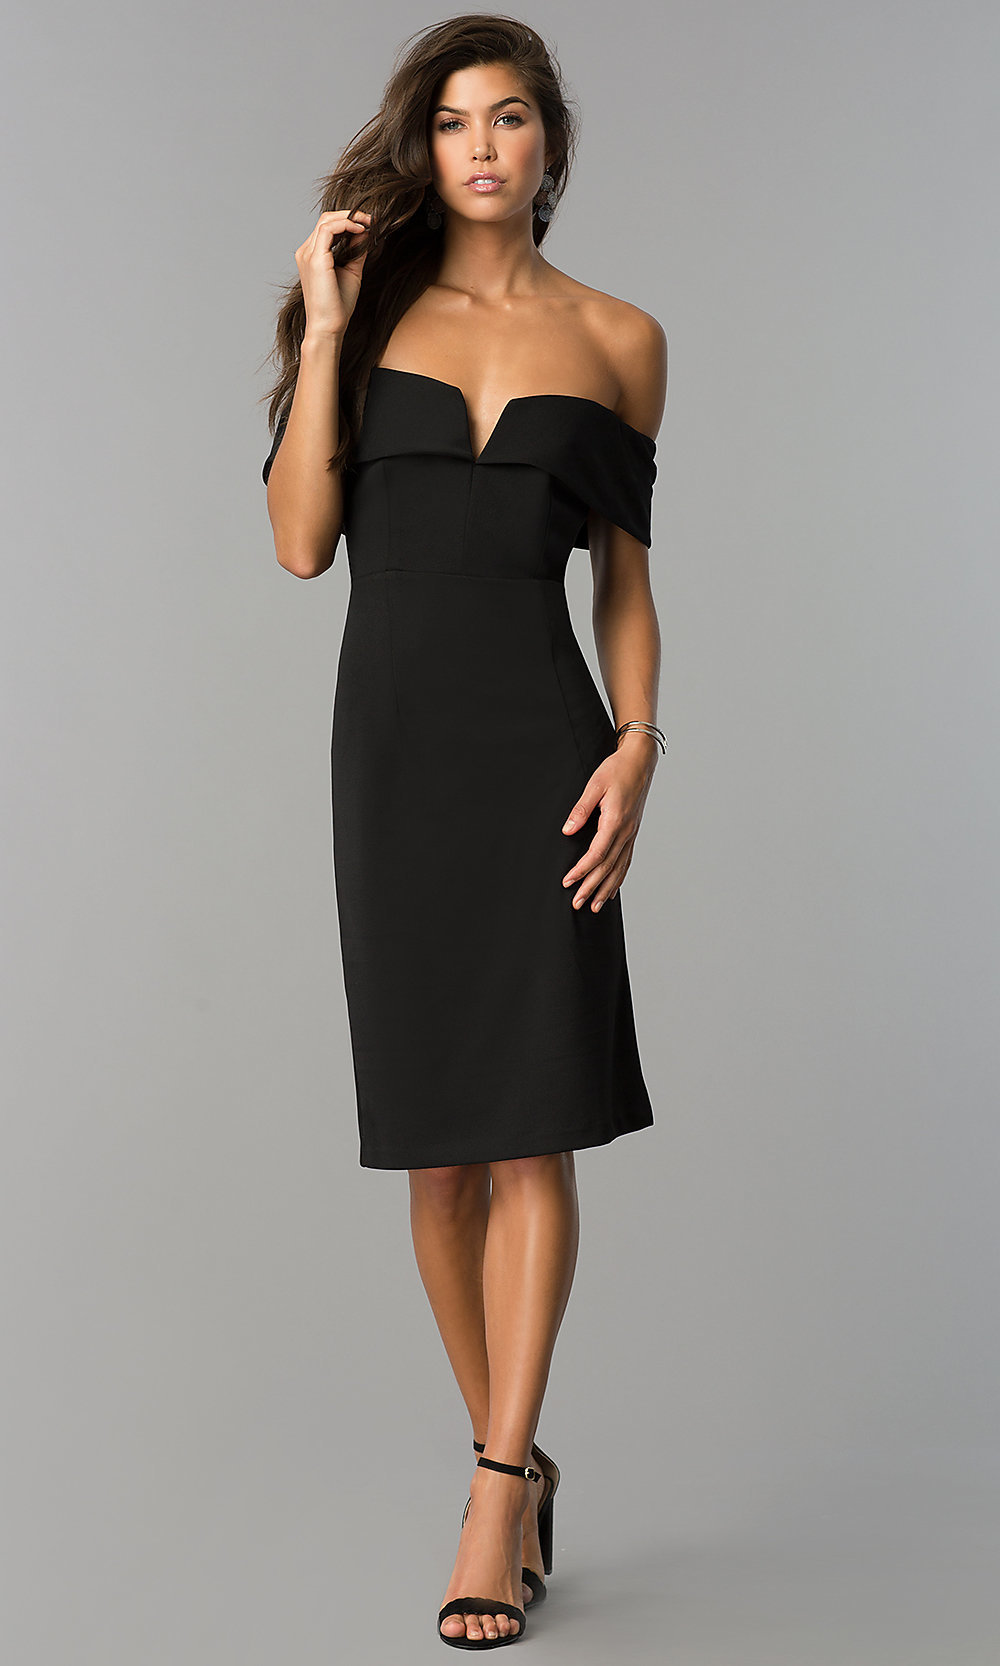 Image of semi-formal strapless midi party dress with slit. Style  SD-. Tap  to expand 9b87b0e7e